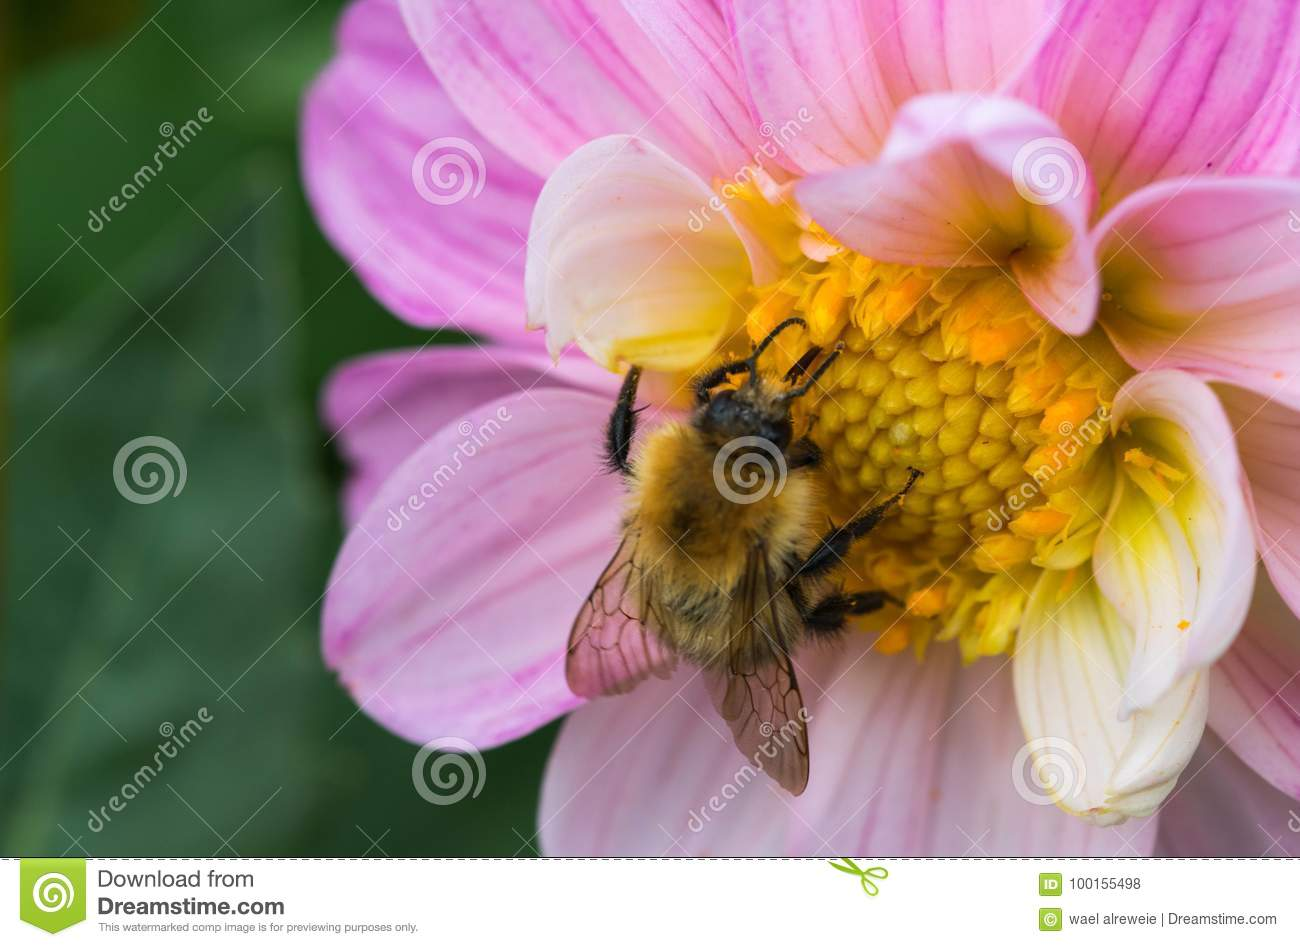 Bee collecting nectar on beautiful flowers stock photo image of bee collecting nectar on some beautiful flowers izmirmasajfo